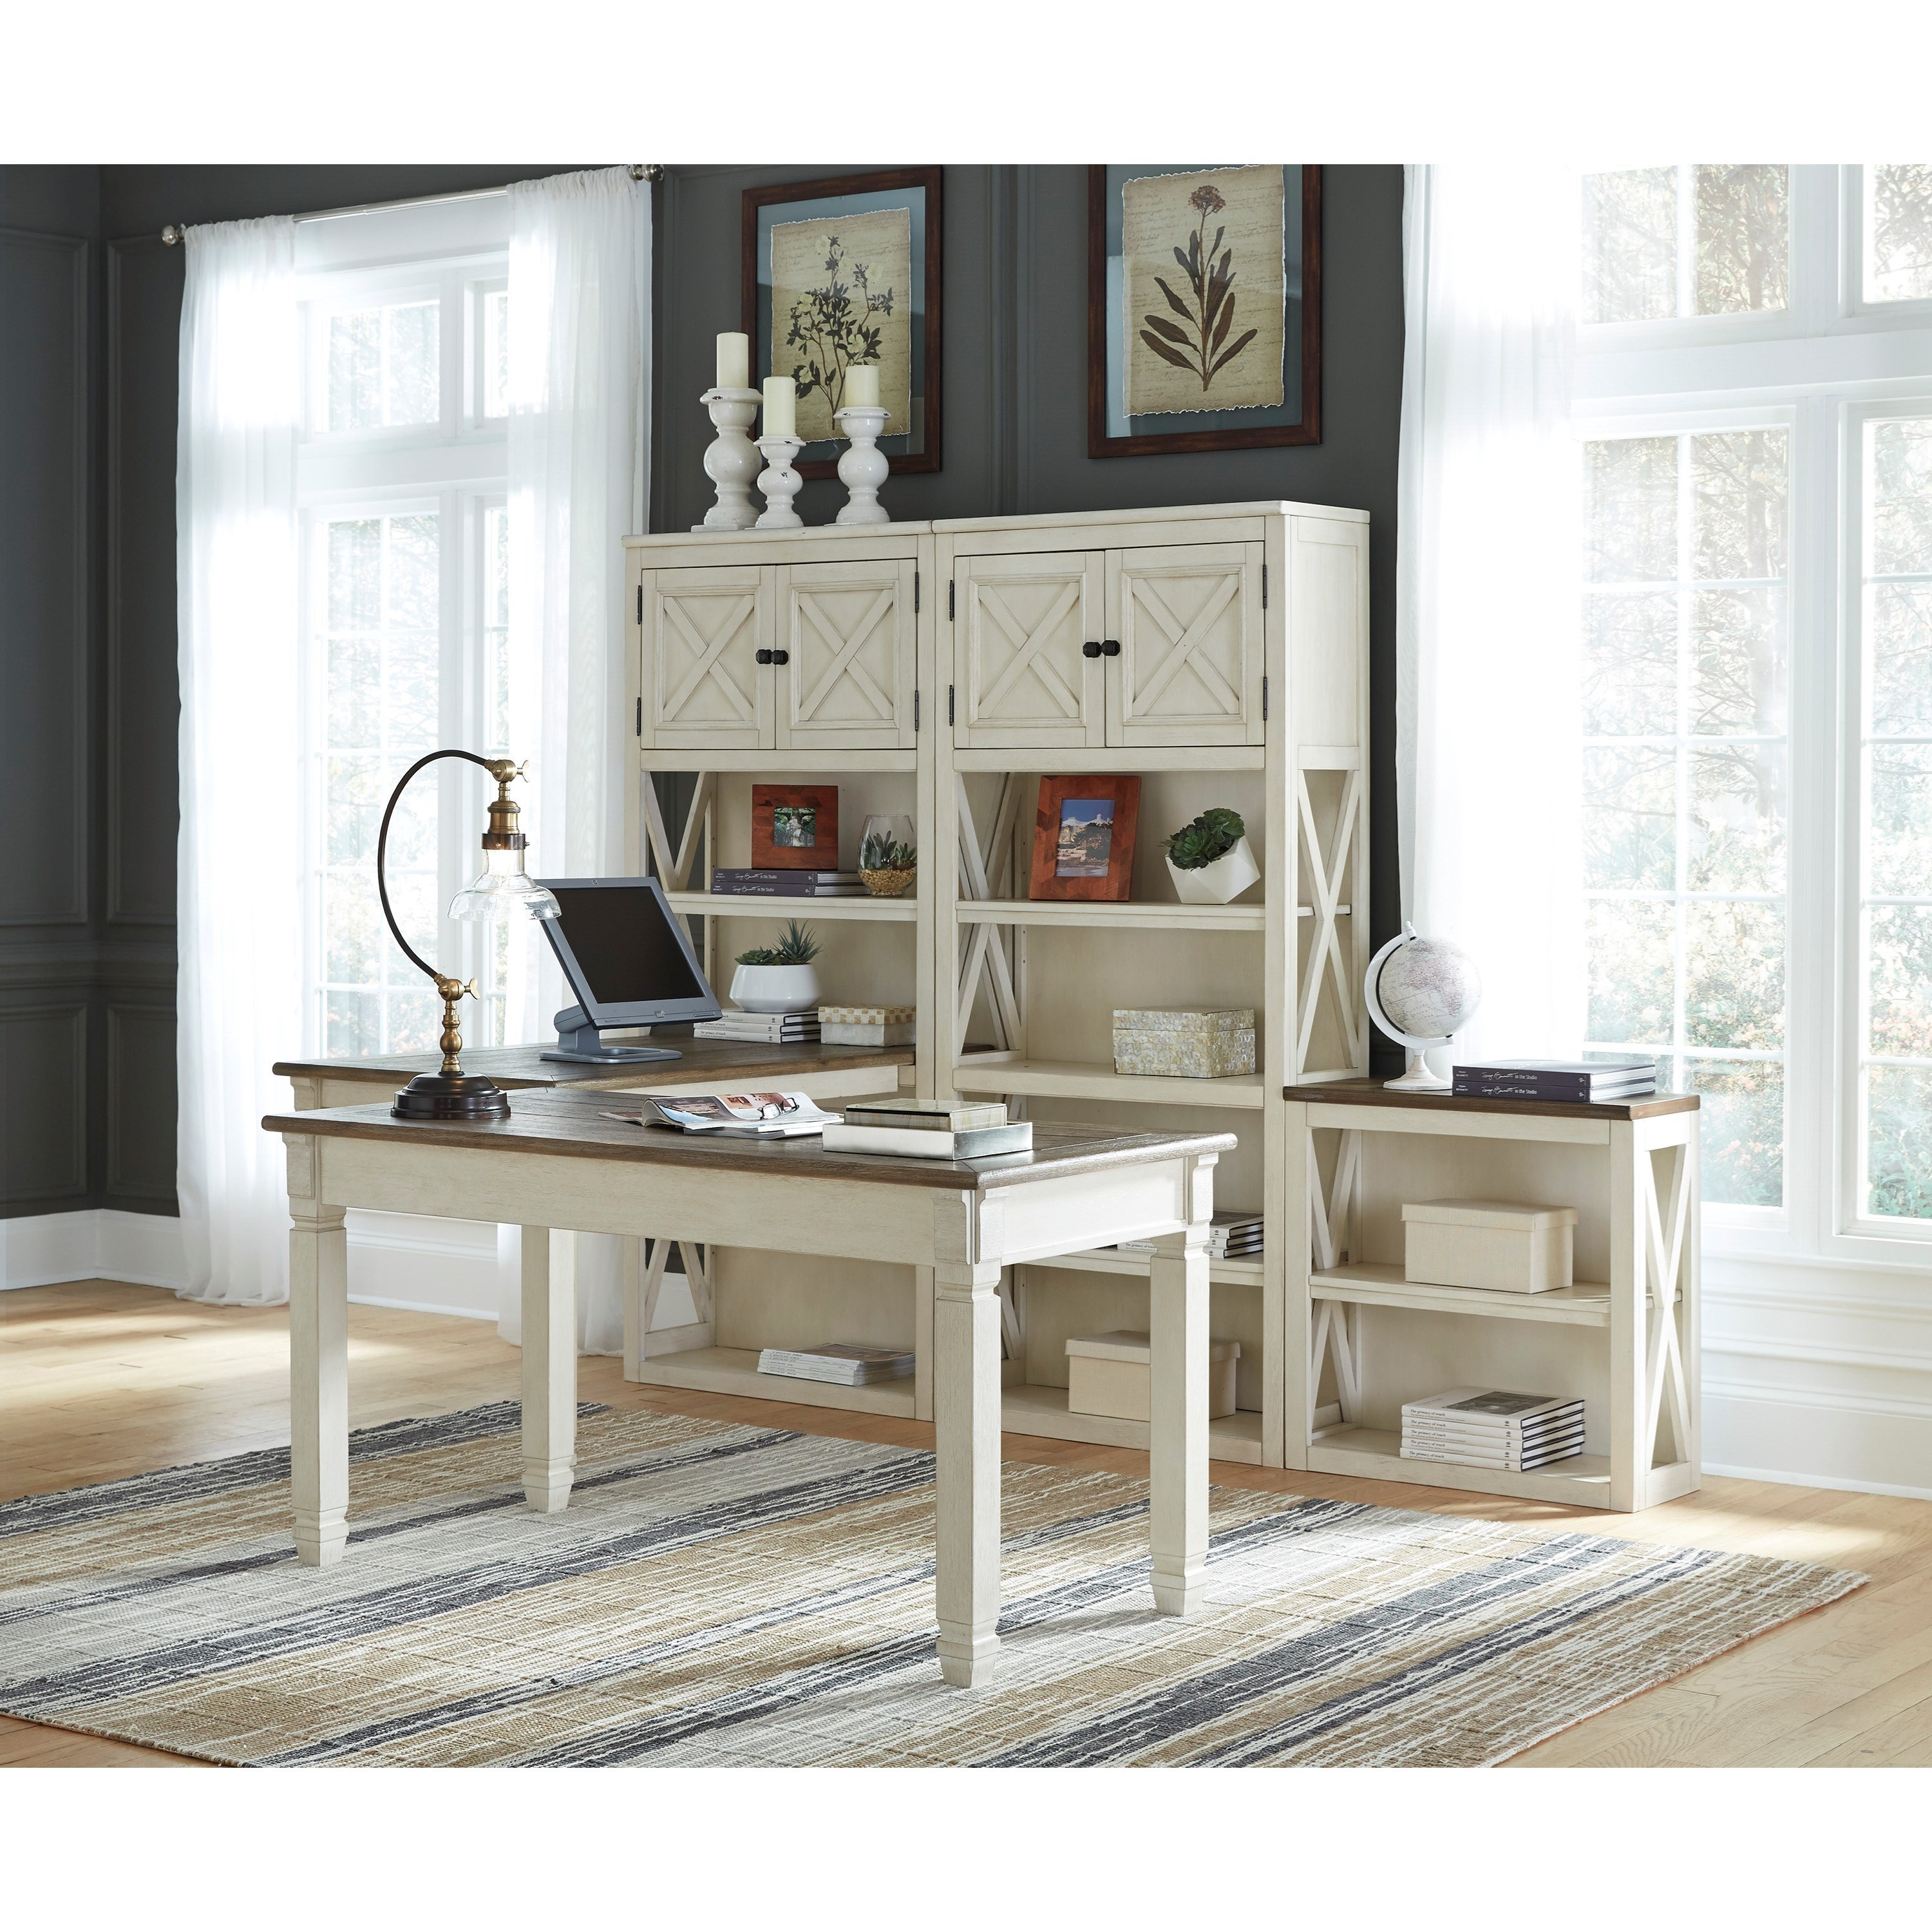 Signature Design By Ashley Bolanburg Two-Tone Home Office